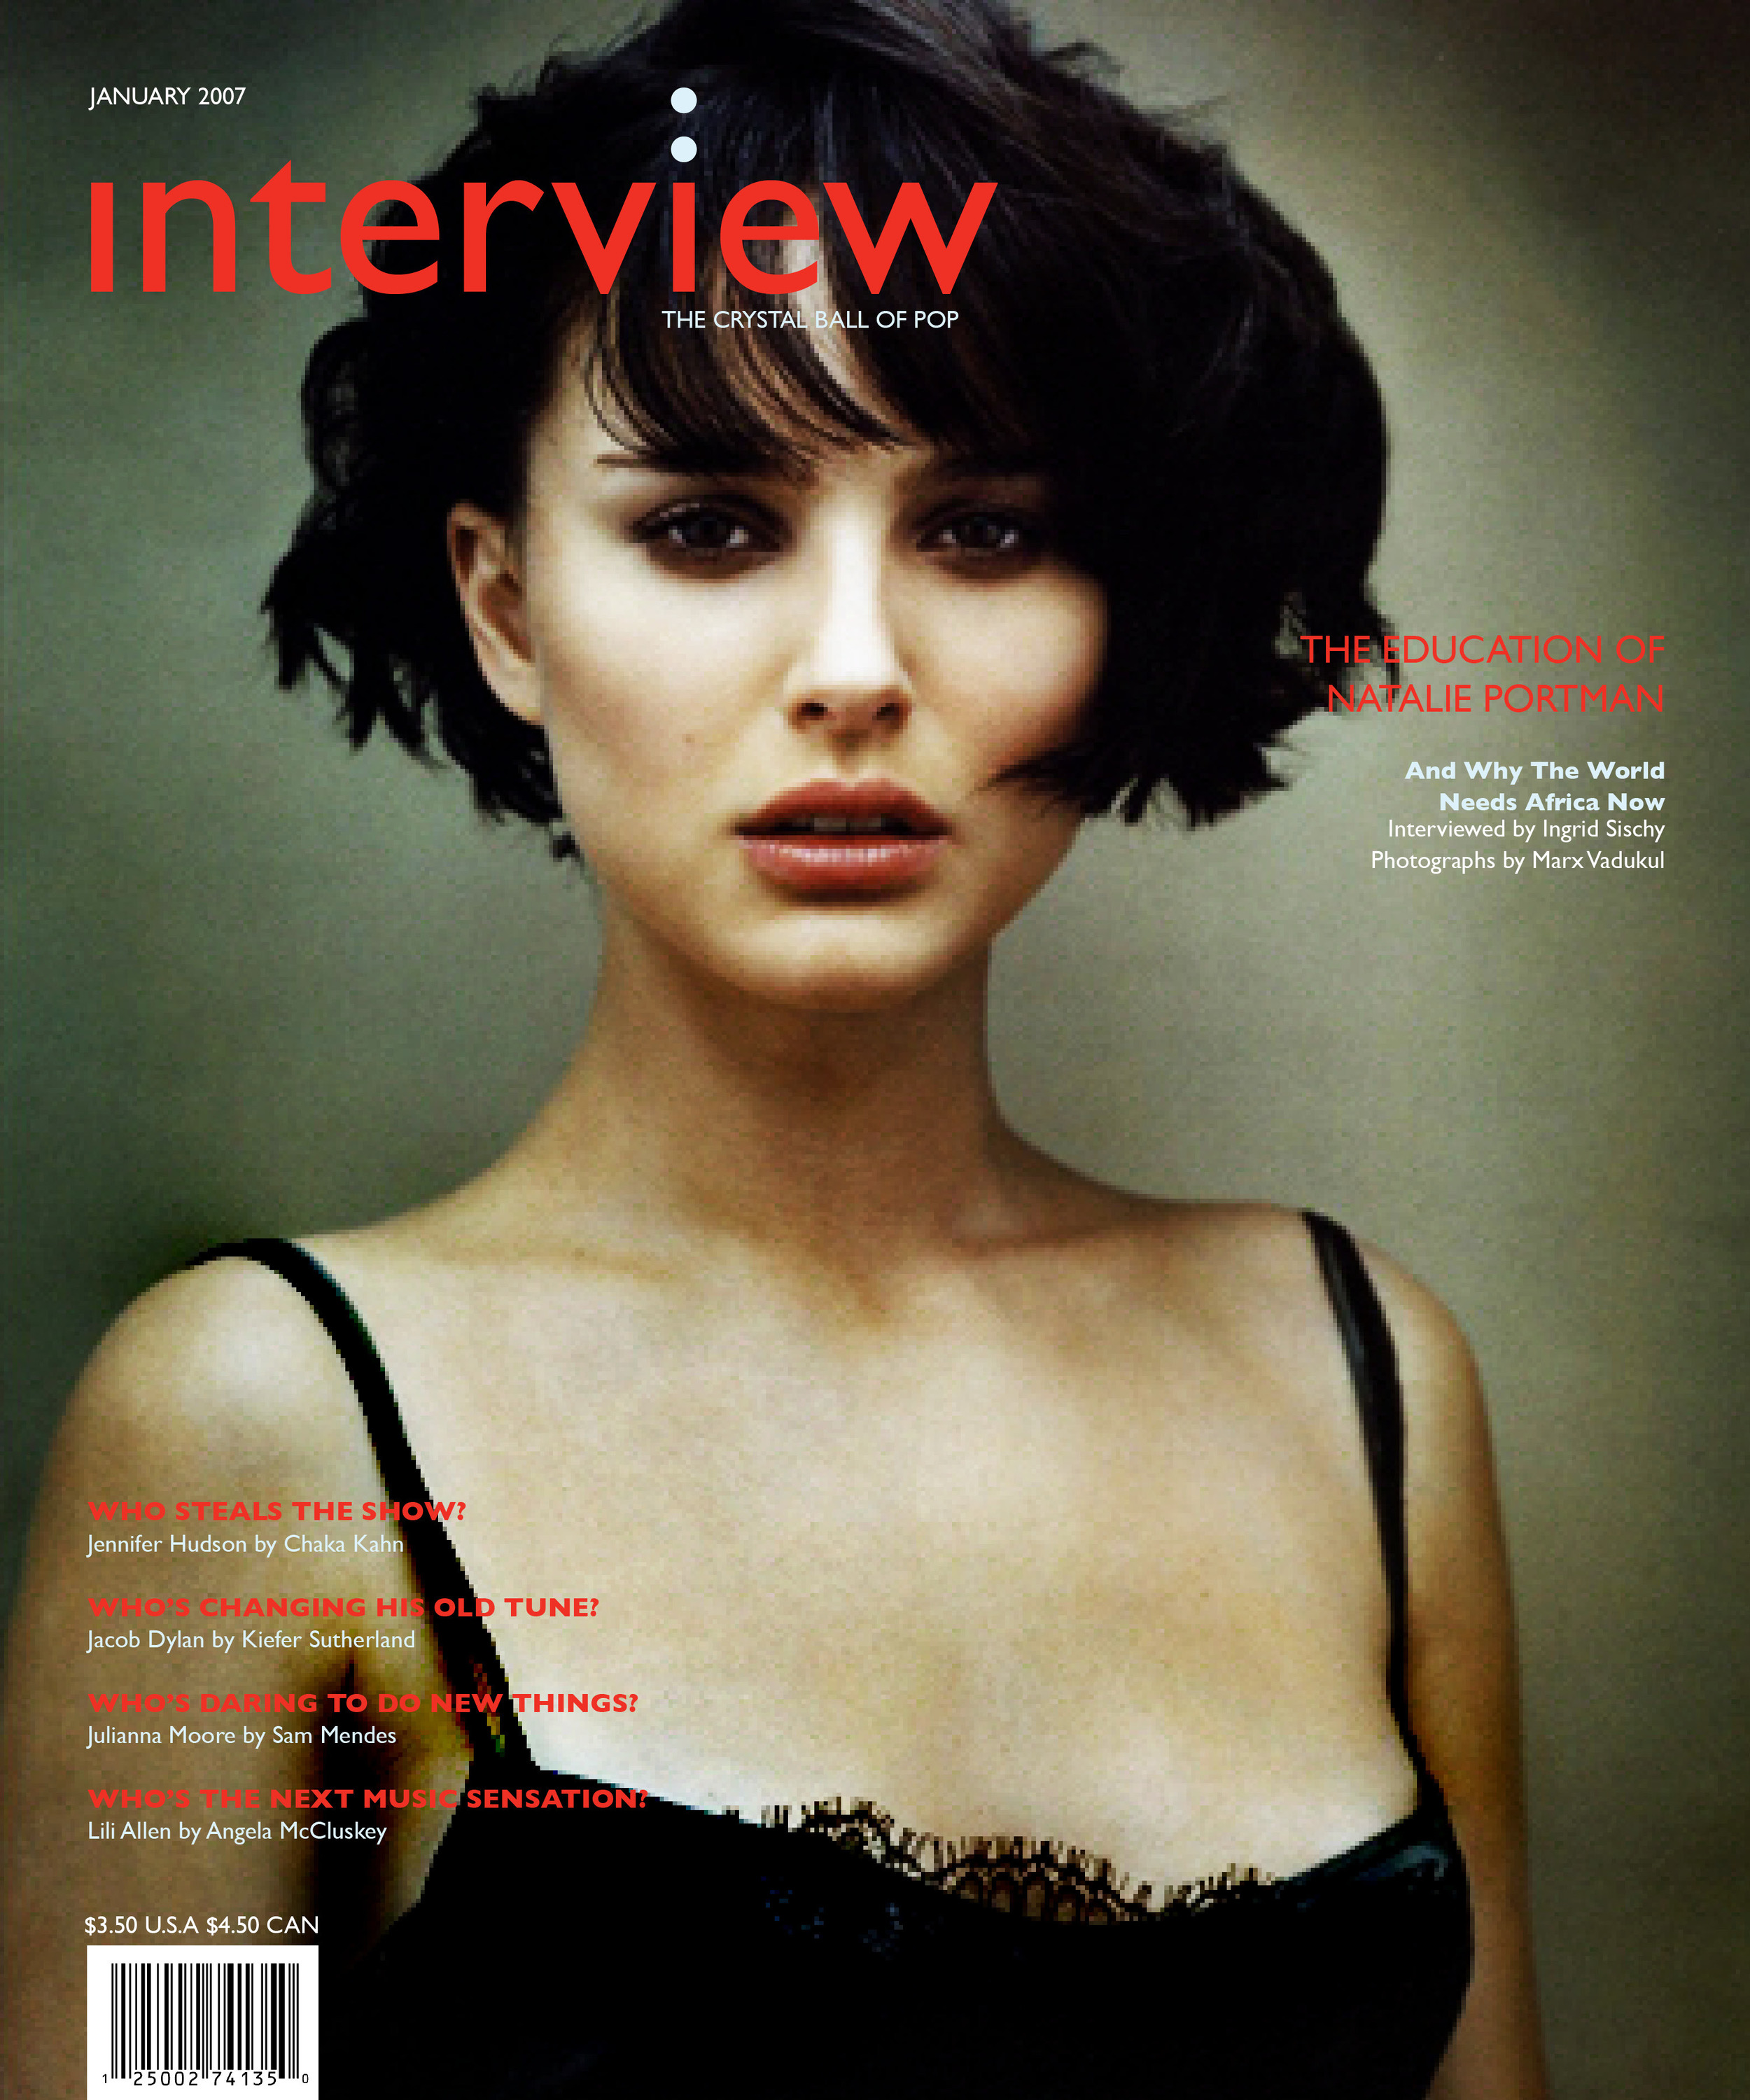 interviewmagazine-cover1.jpg